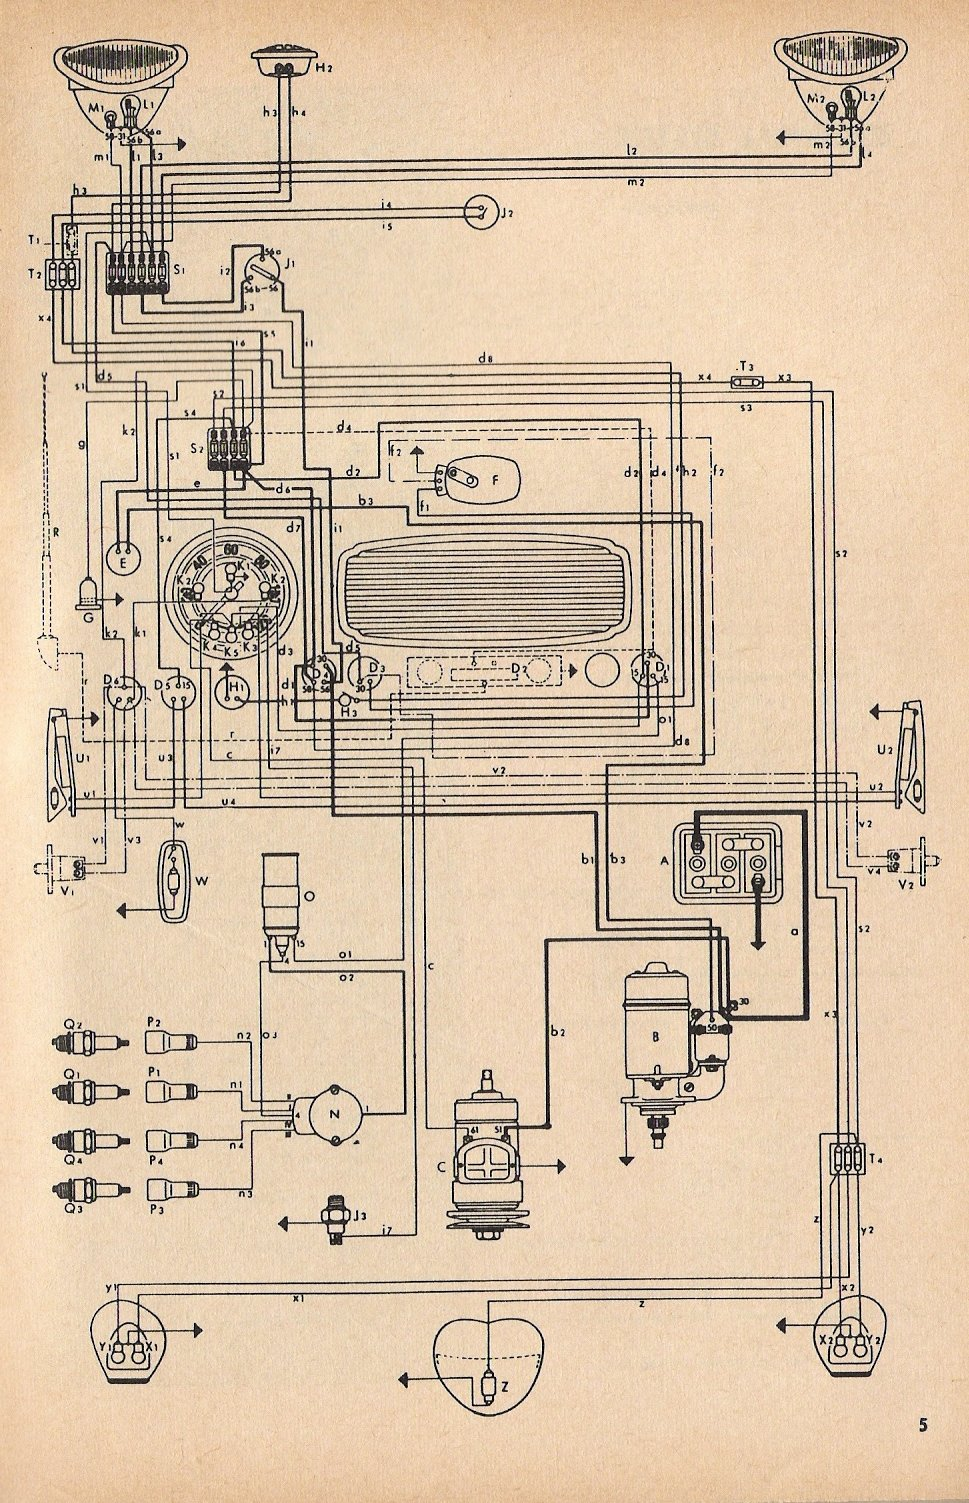 medium resolution of 1973 super beetle wiring diagram thegoldenbug wiring diagrams konsult 1973 vw super beetle engine wiring diagram